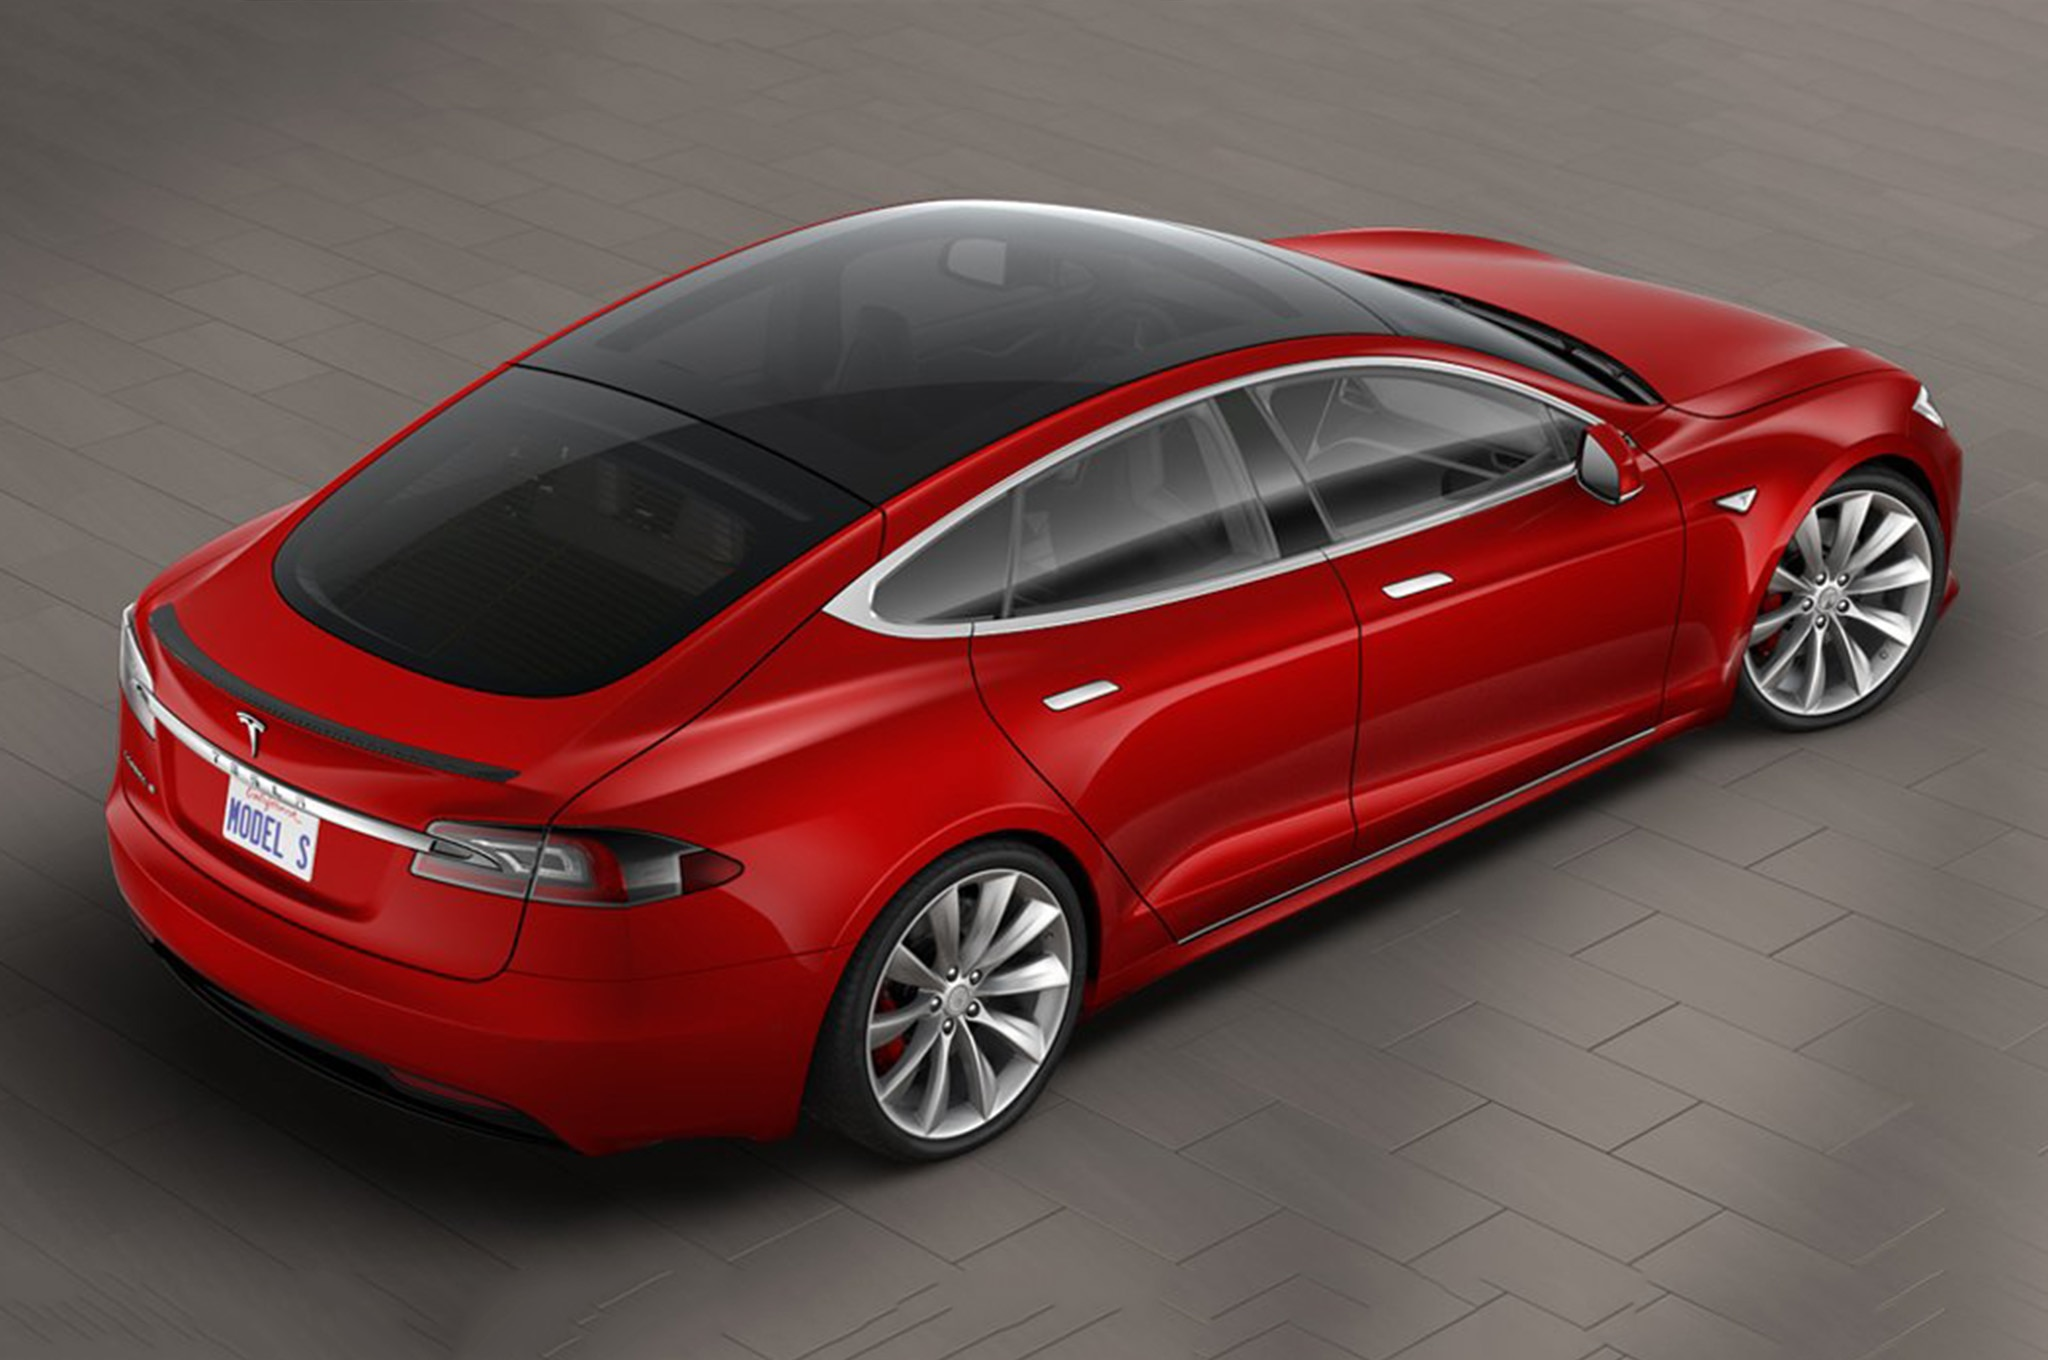 2017 tesla model s features glass roof from model 3 concept automobile magazine. Black Bedroom Furniture Sets. Home Design Ideas